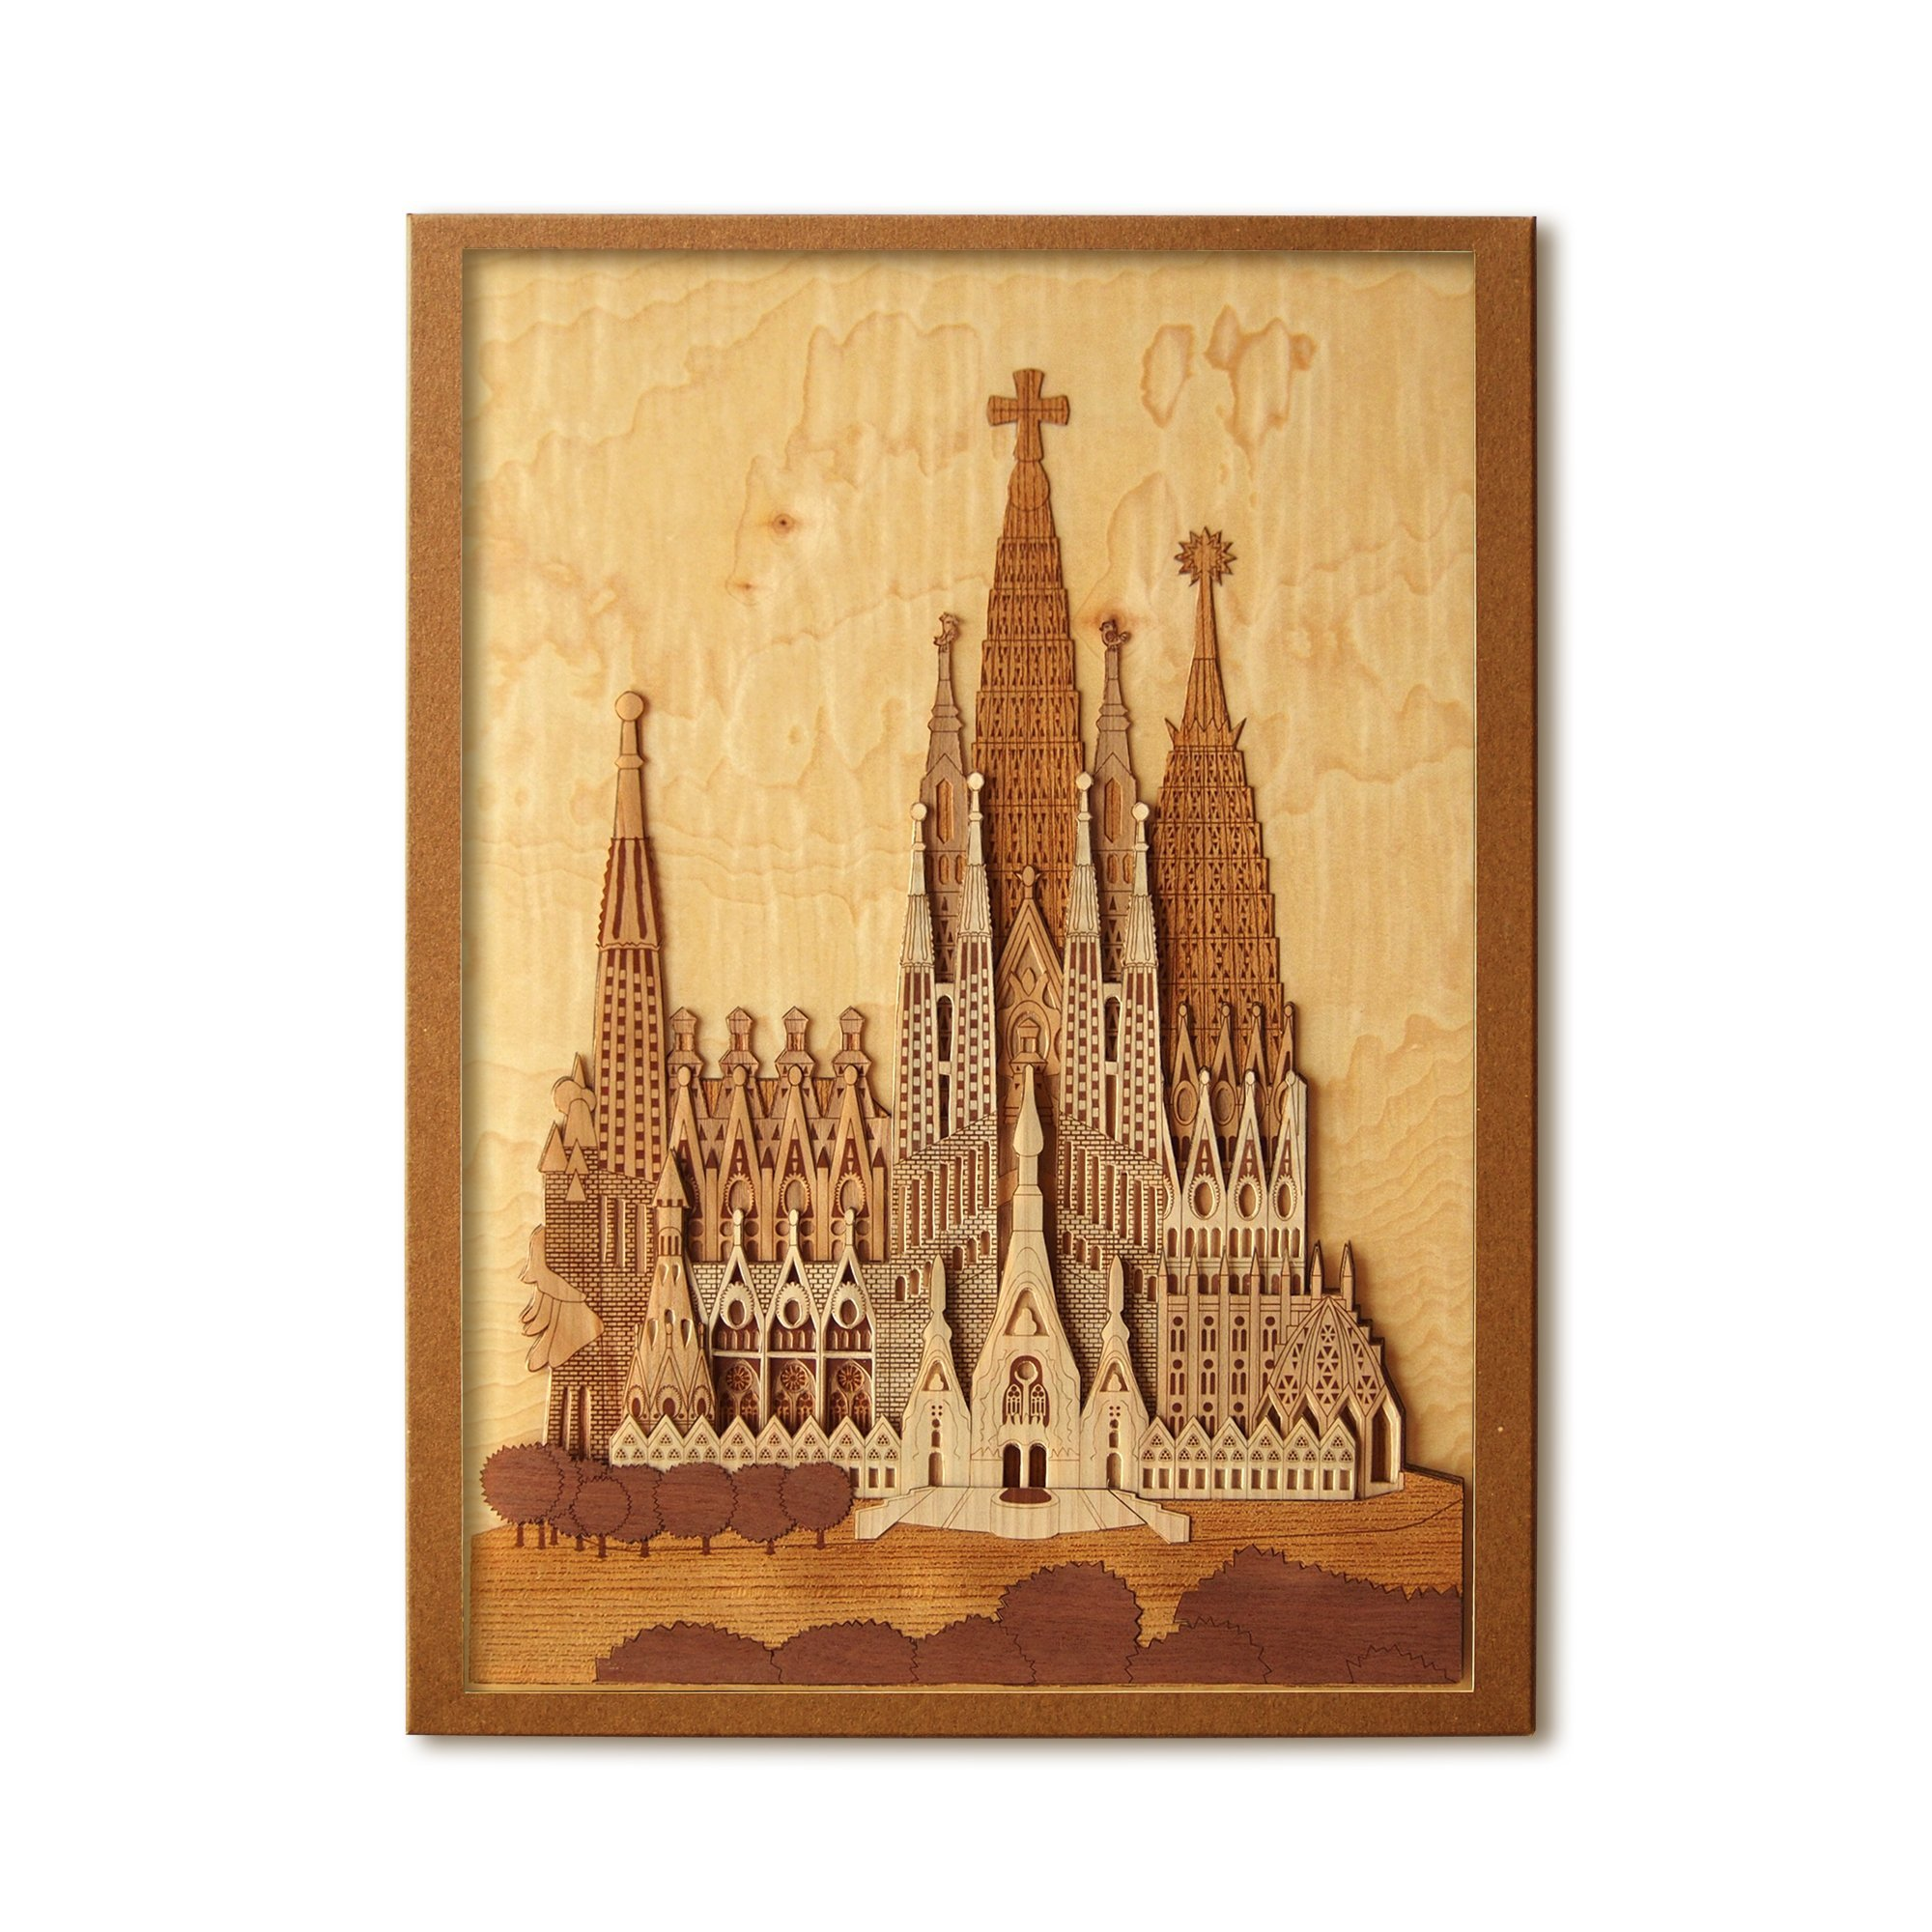 KINOWA Wooden Art Kit Kiharie Sagrada Familia Made in Japan by KINOWA (Image #1)